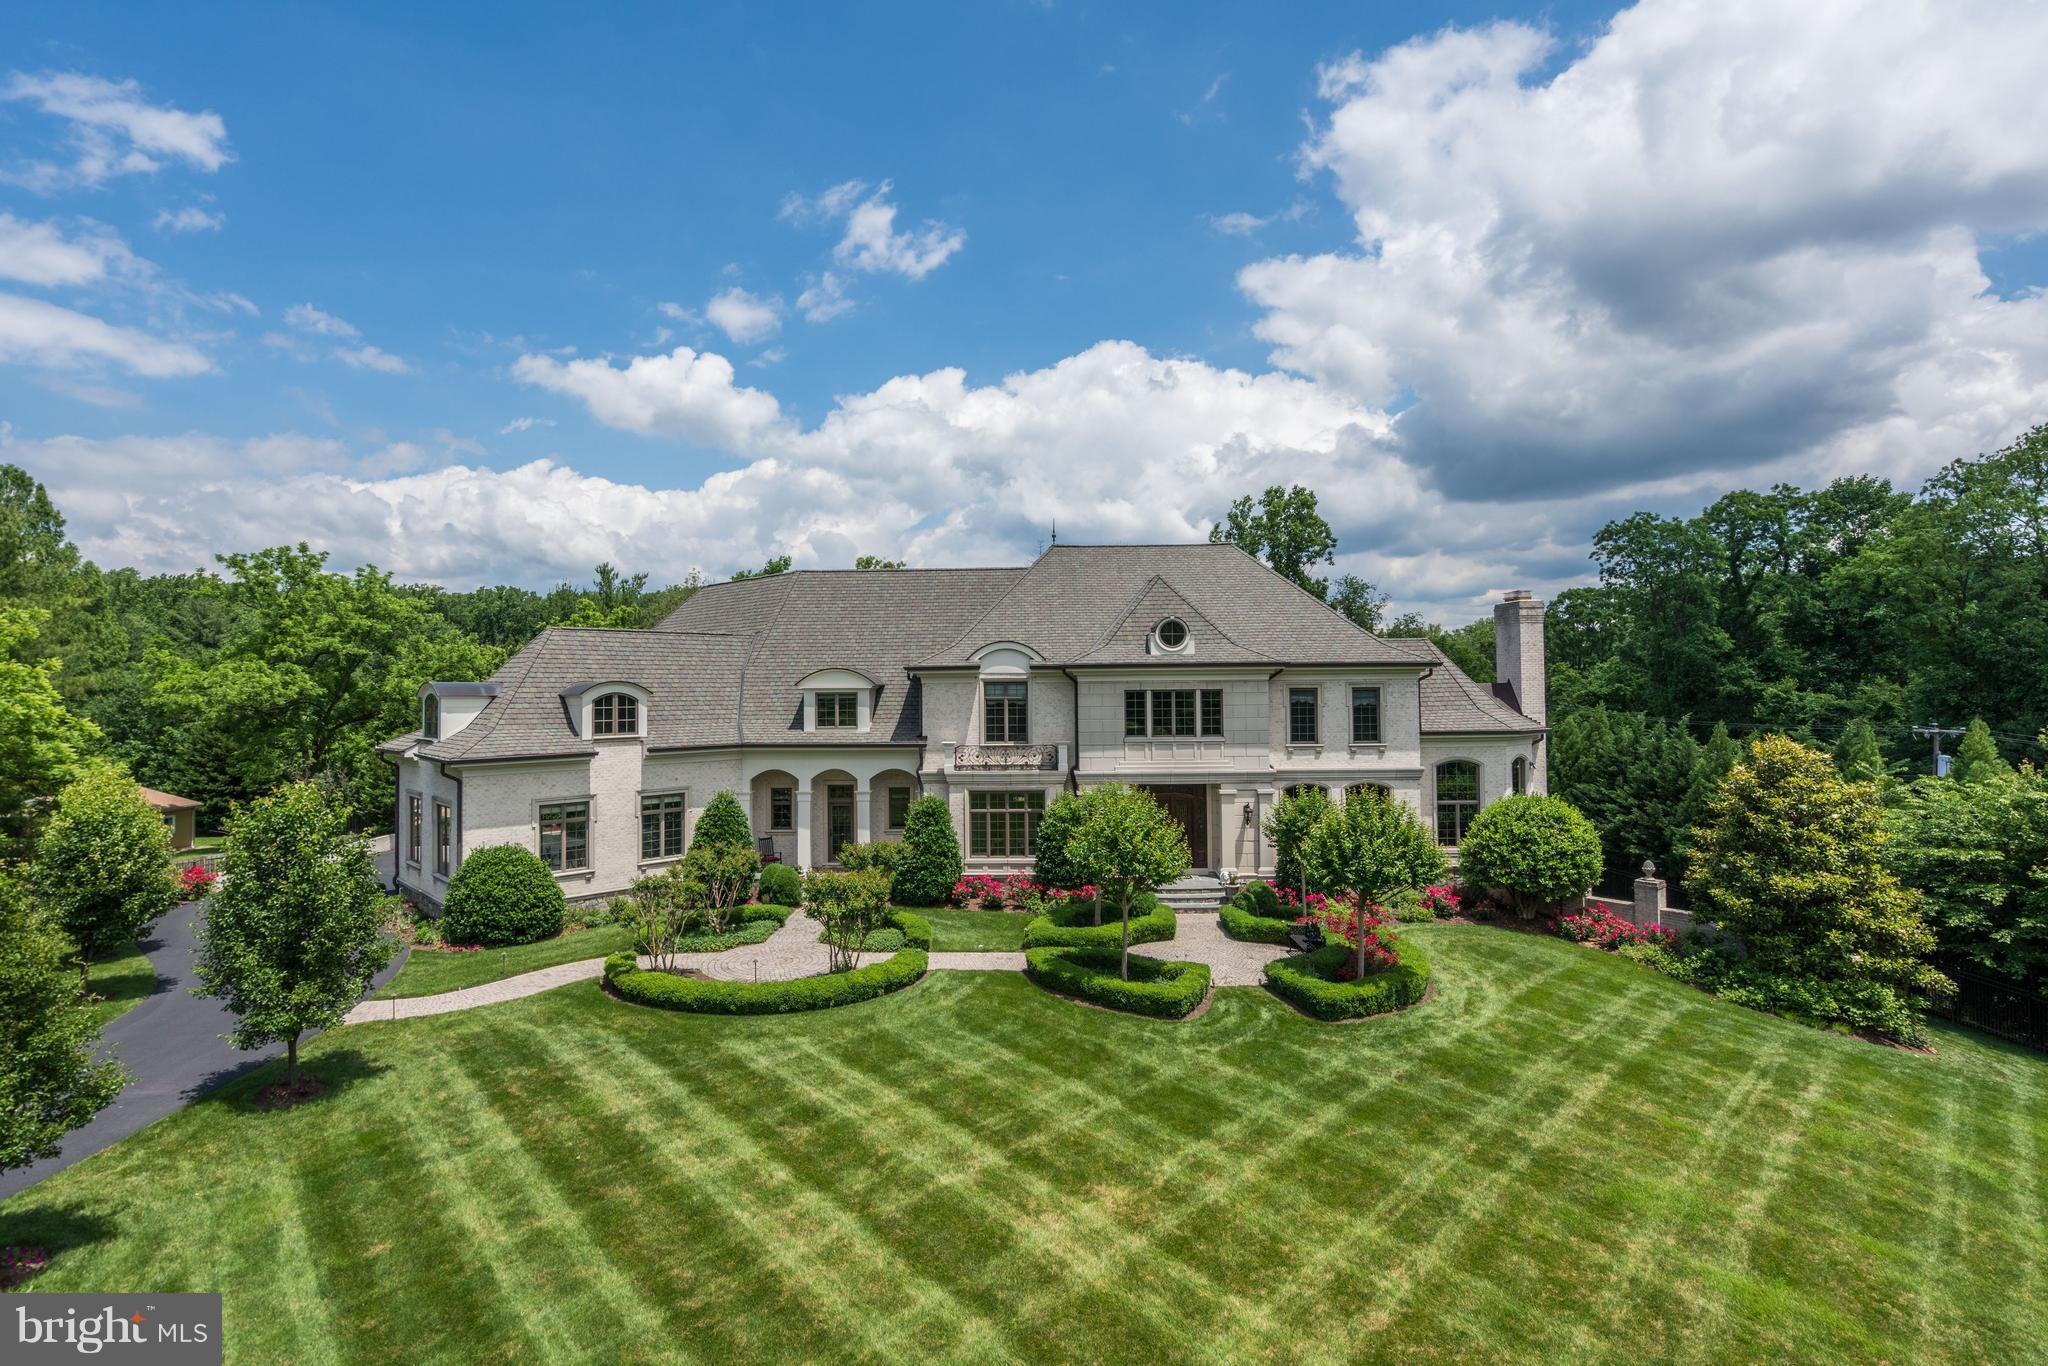 This Impeccable French Provincial compound is surrounded by 1.2 acres of meticulously manicured grounds, providing an exceptional impression of spaciousness. Multiple pathways lead to rare plantings, beautiful imported fountains, an Olympic-sized swimming pool, and fully equipped outdoor pavilion perfect for lavish entertaining. Taste and elegance abound with prestigious materials used for all finishes and treatments.